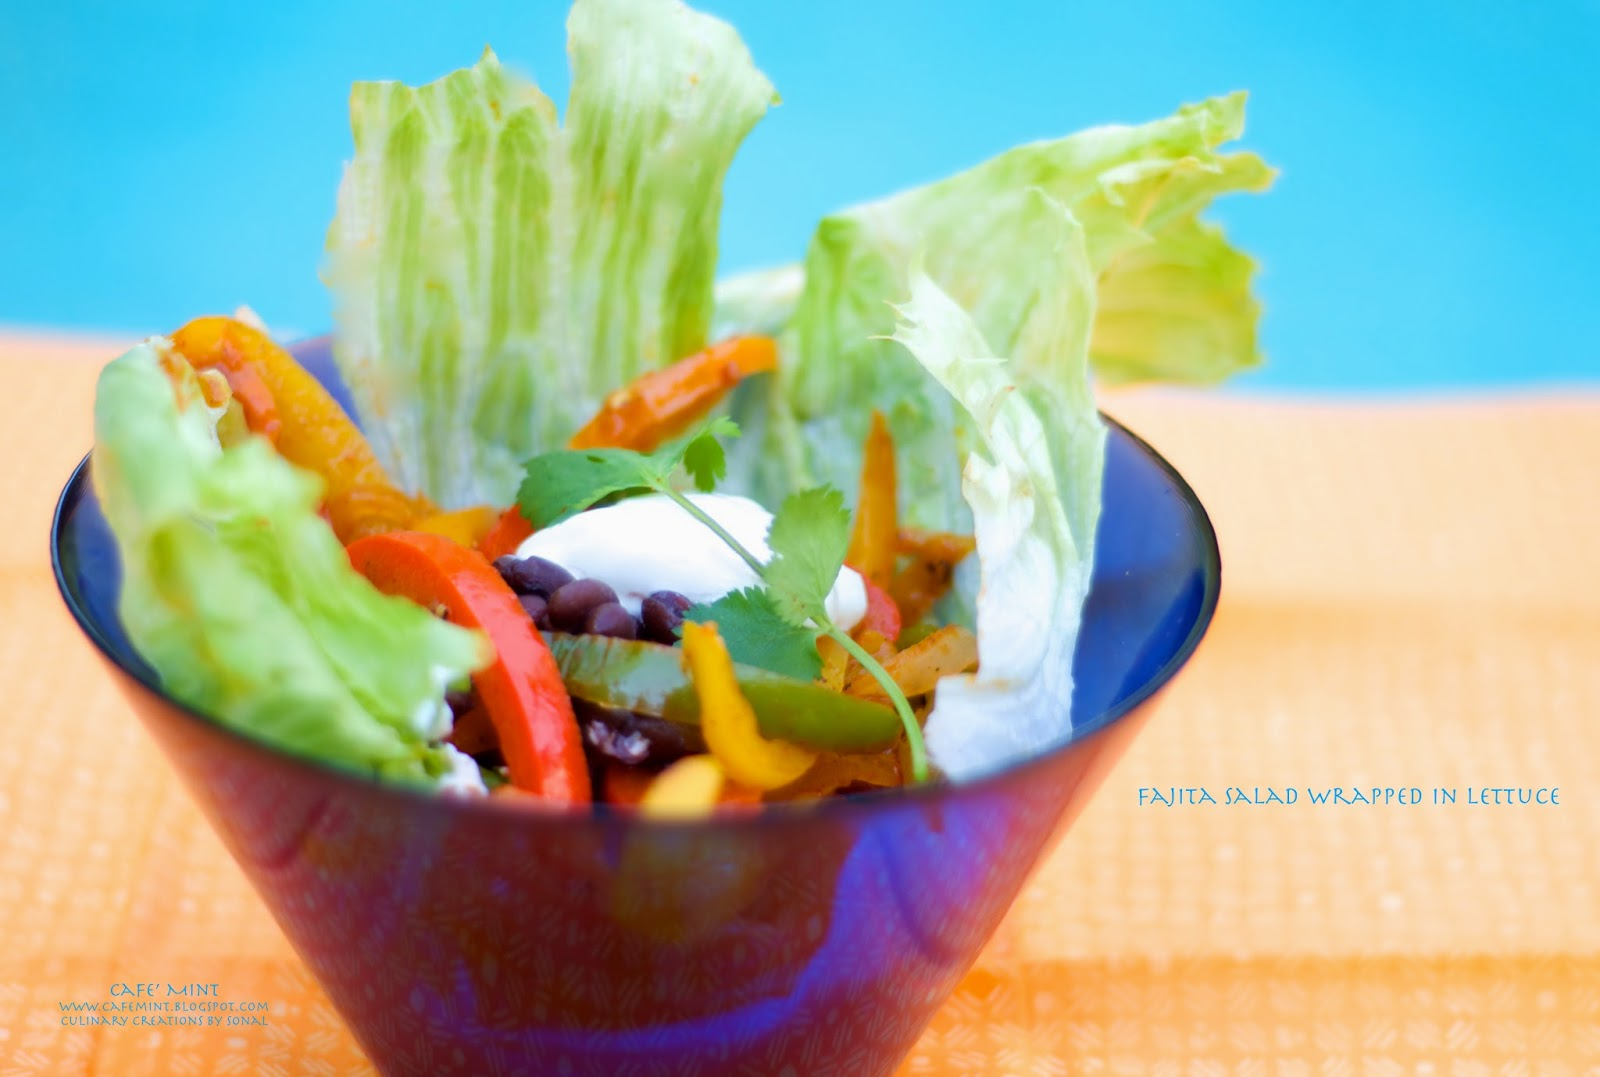 Fajita Salad Wrapped In Lettuce | Eat More Art